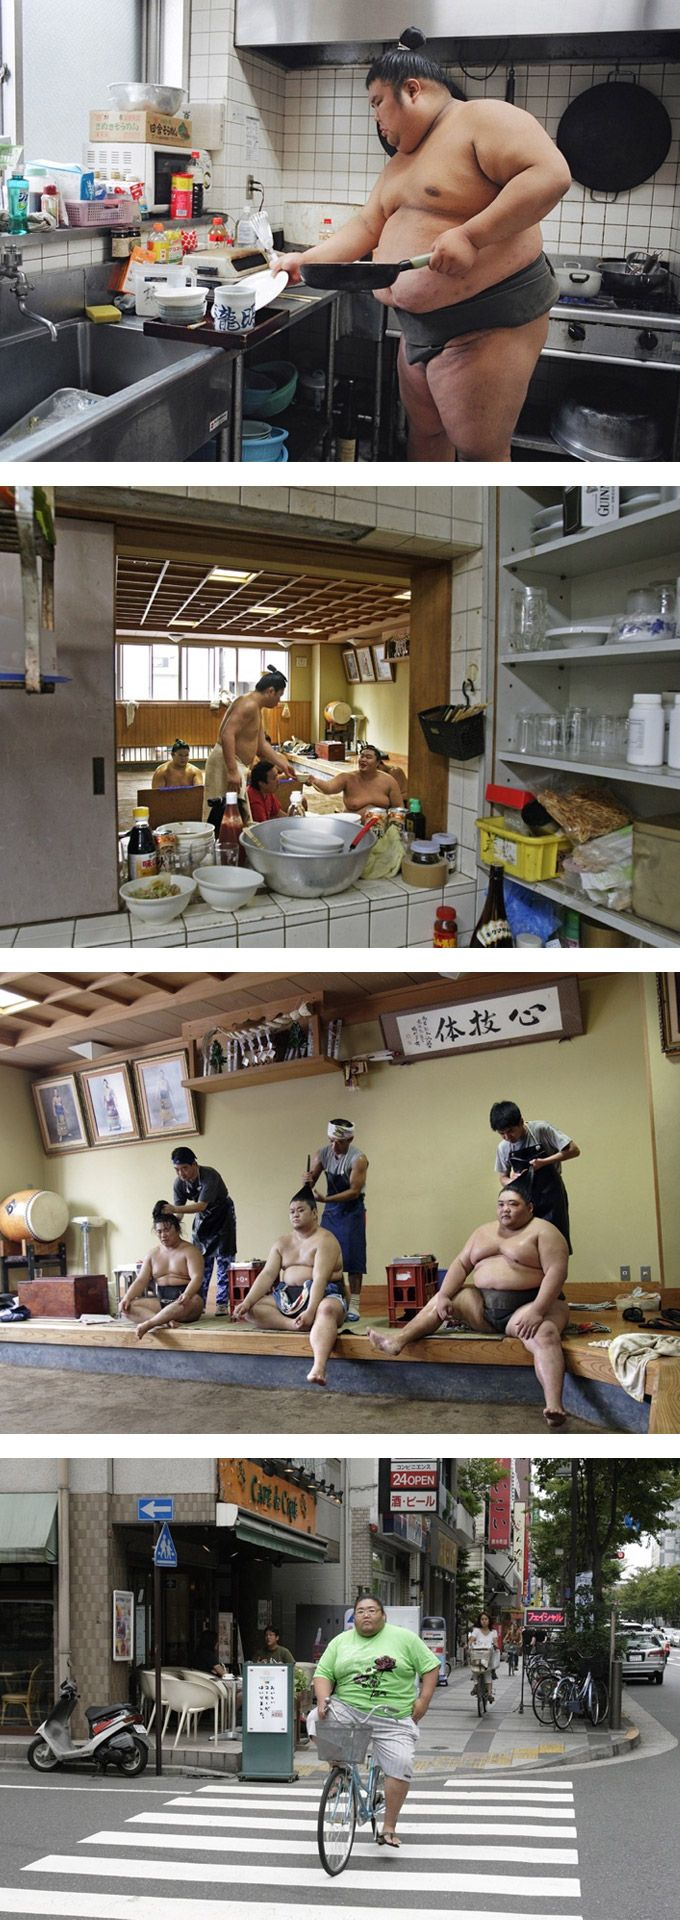 A Day in the Life - Sumo / Paolo Patrizi